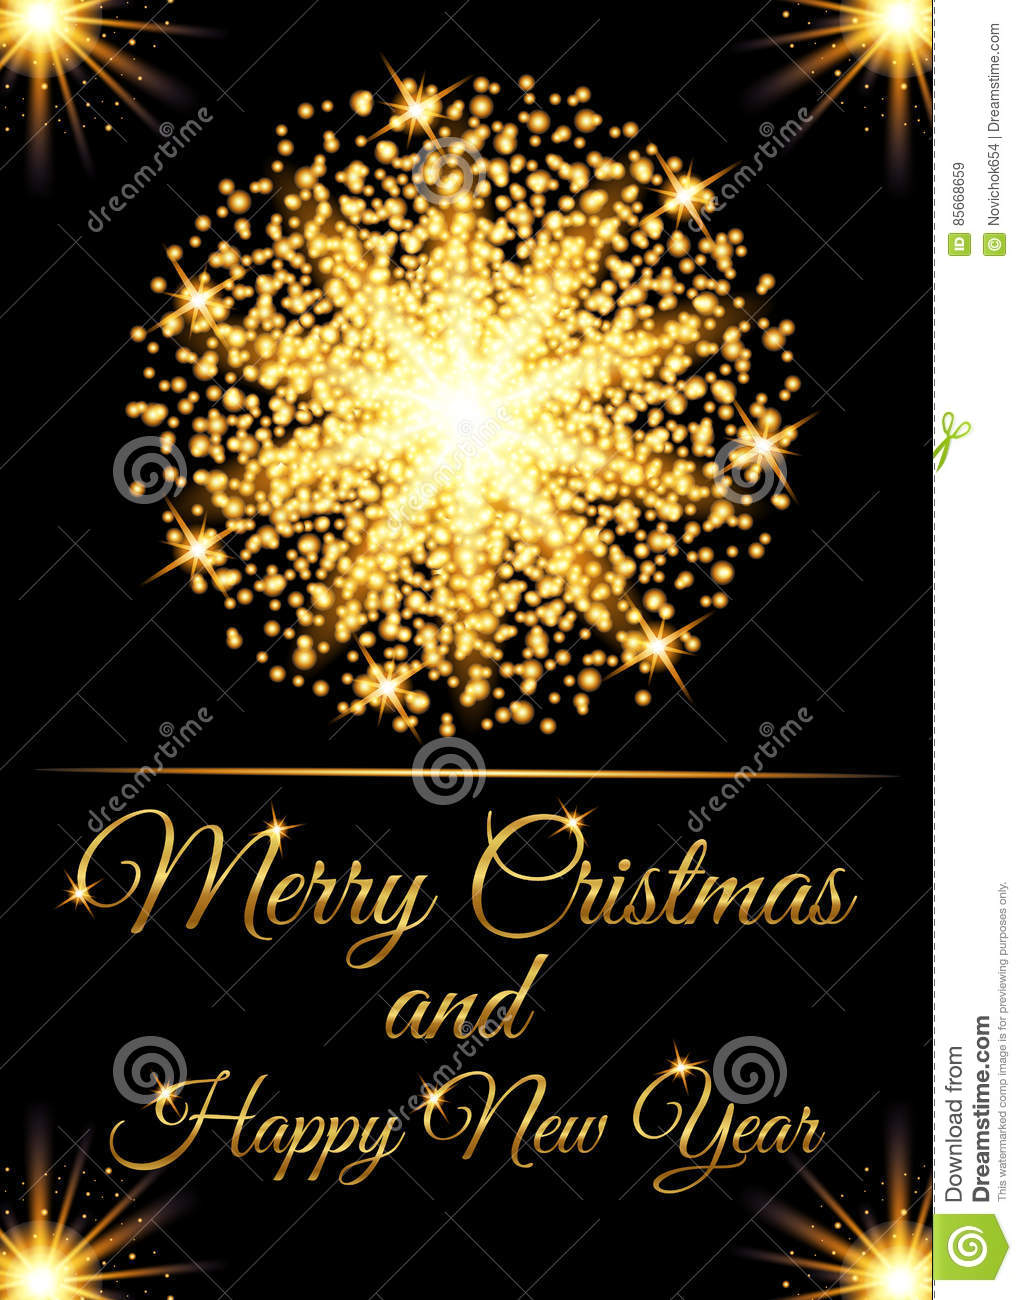 download christmas greeting card and happy new year invitation with glow gold particles stock vector